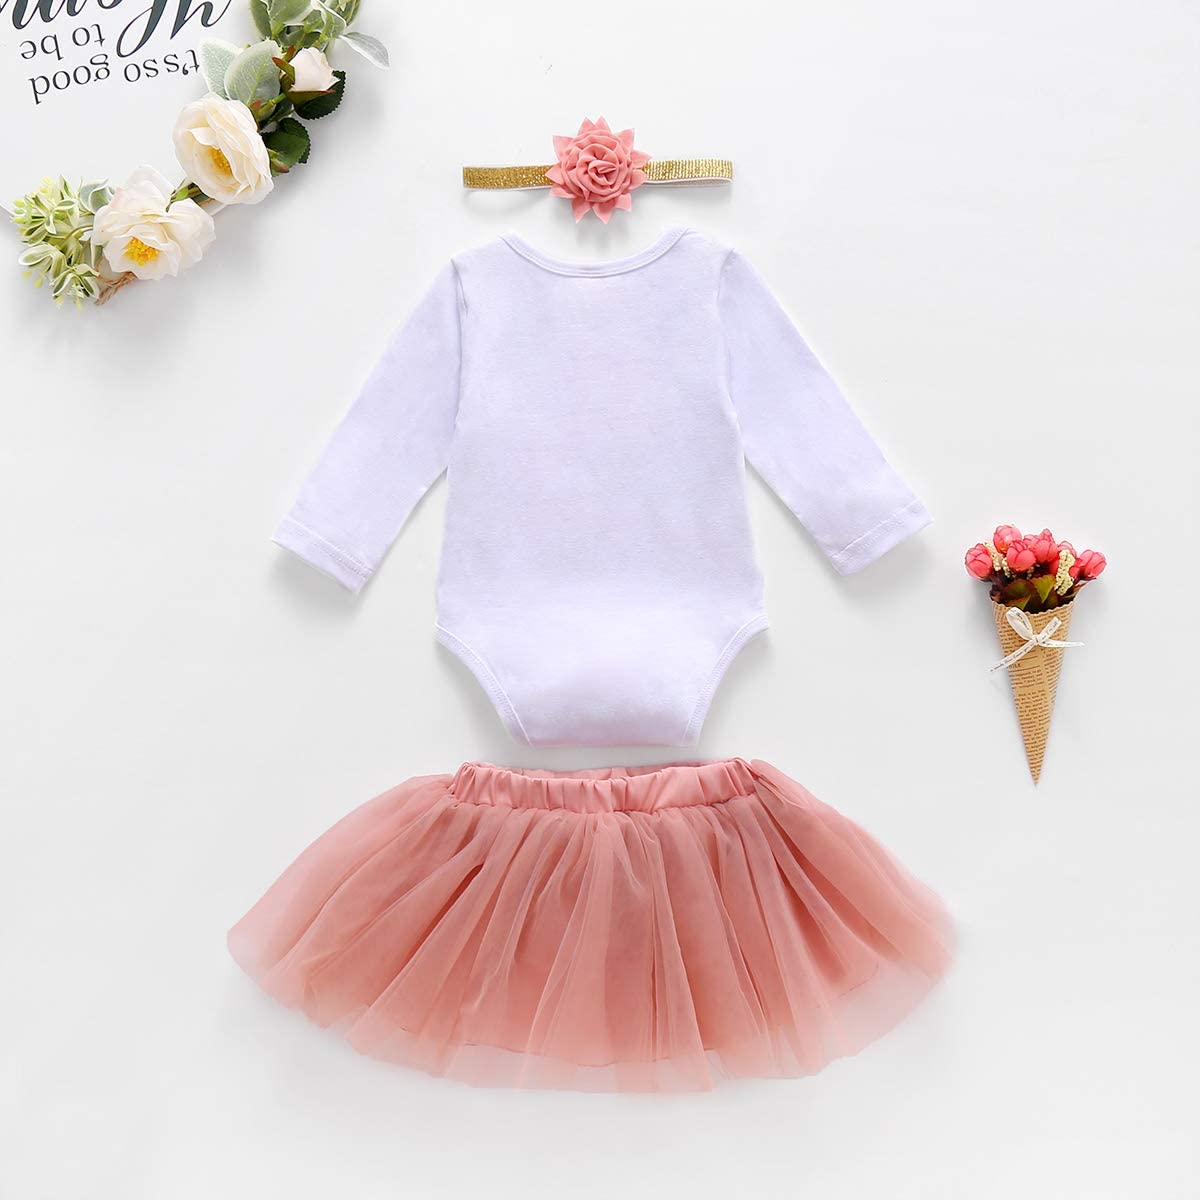 Baby Girl Clothes Toddlers Girls Summer Clothes Daddy's Girl Mommy's World Infant Baby Girl Outfits